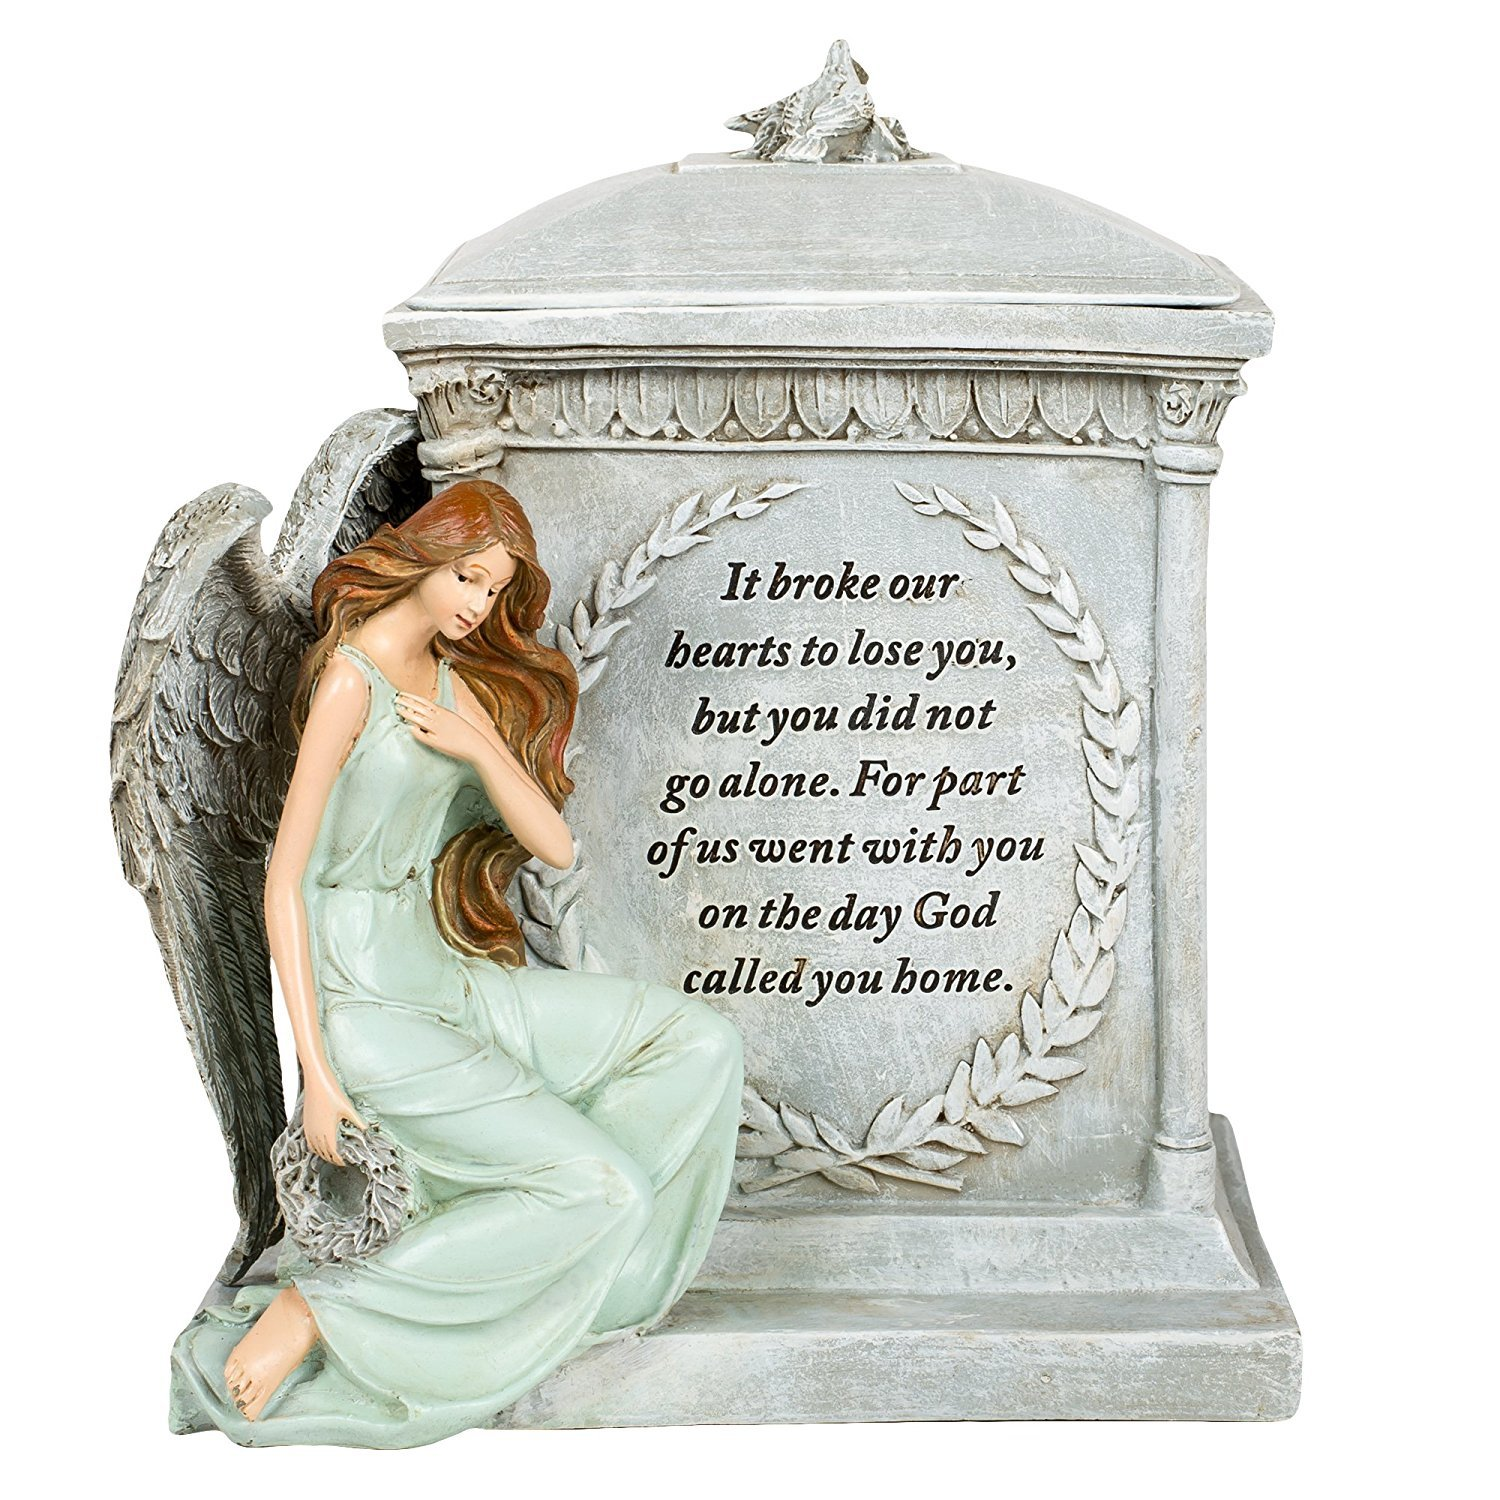 Roman 48476 8.5'' Inch Height Memorial Urn Forever with the Angels by Roman